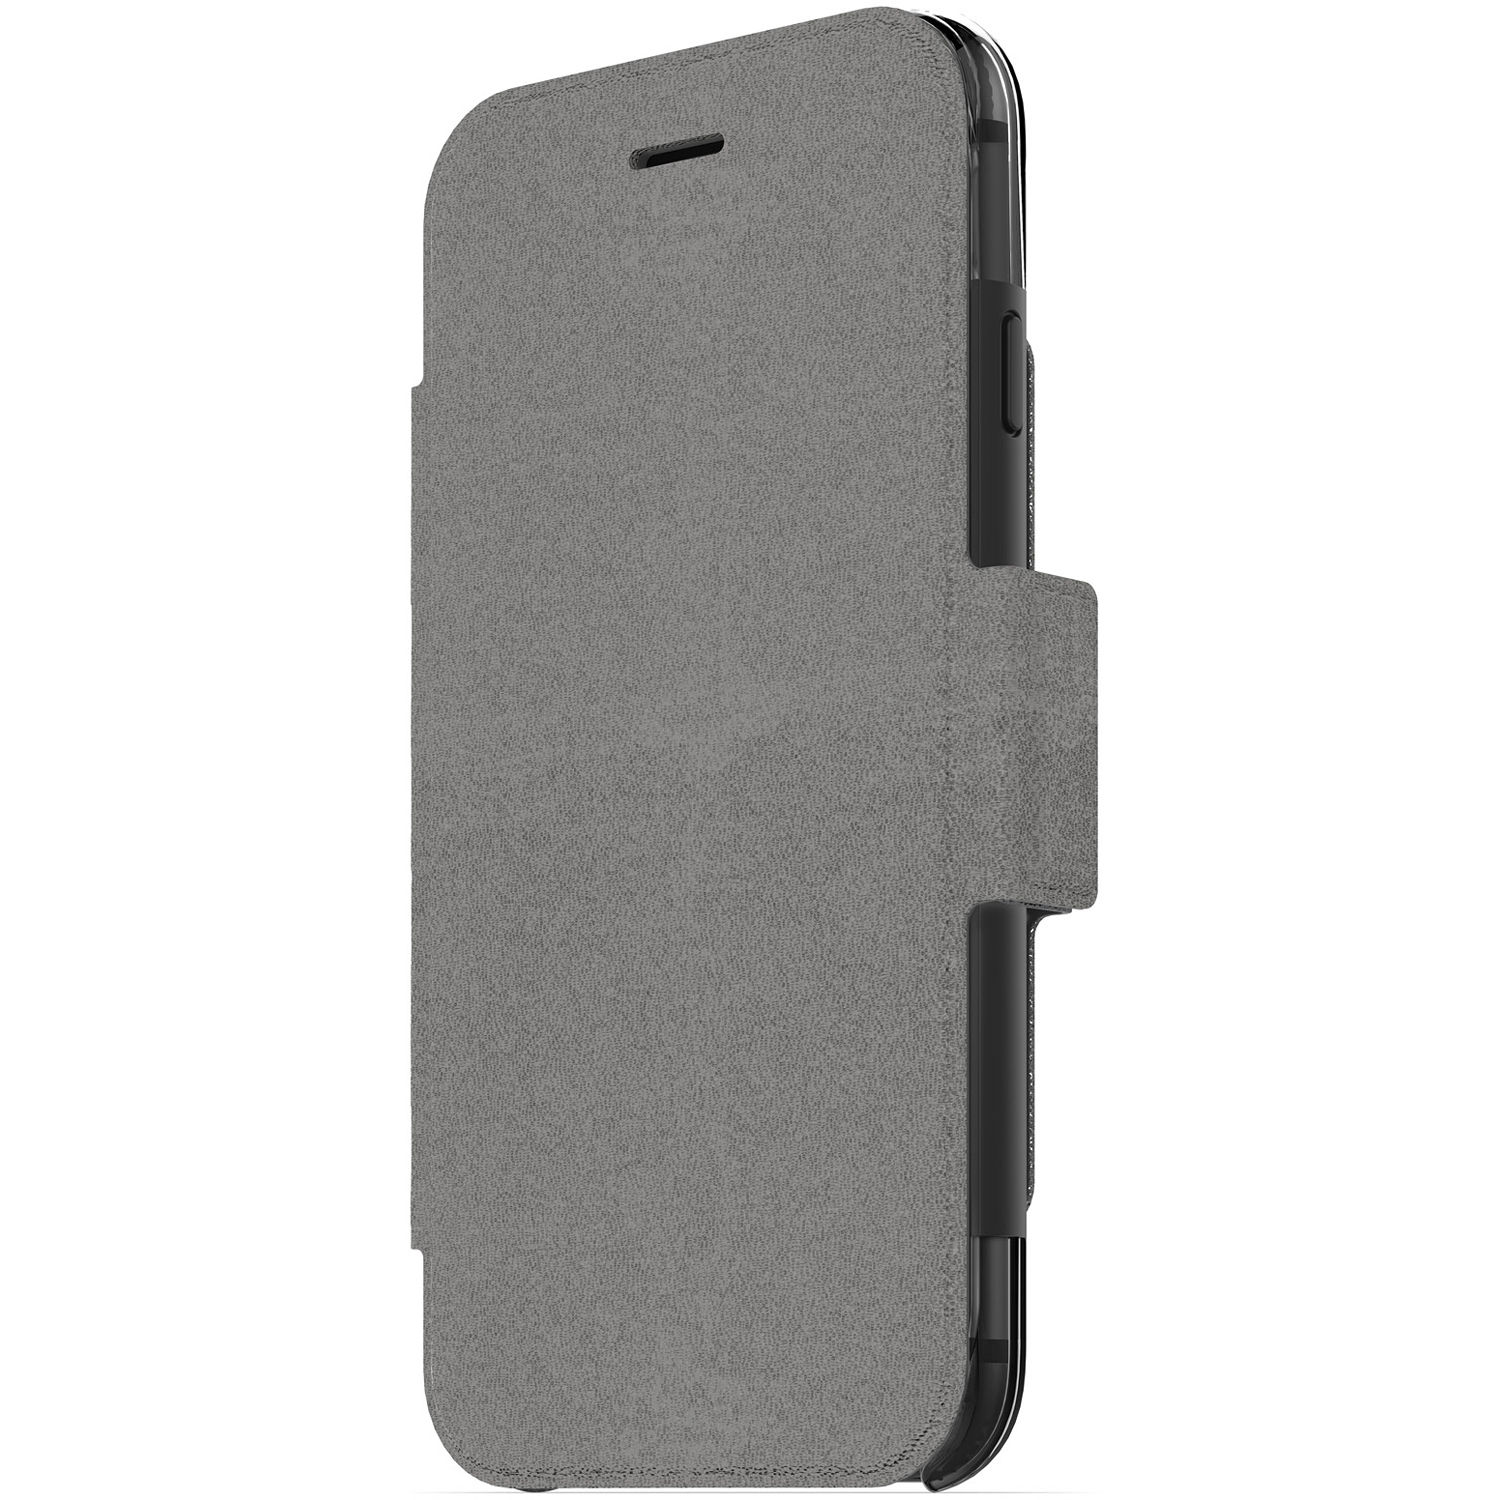 huge discount 6db05 70cb4 mophie Hold Force Folio for iPhone 7 and iPhone 8 (Stone/Gray)